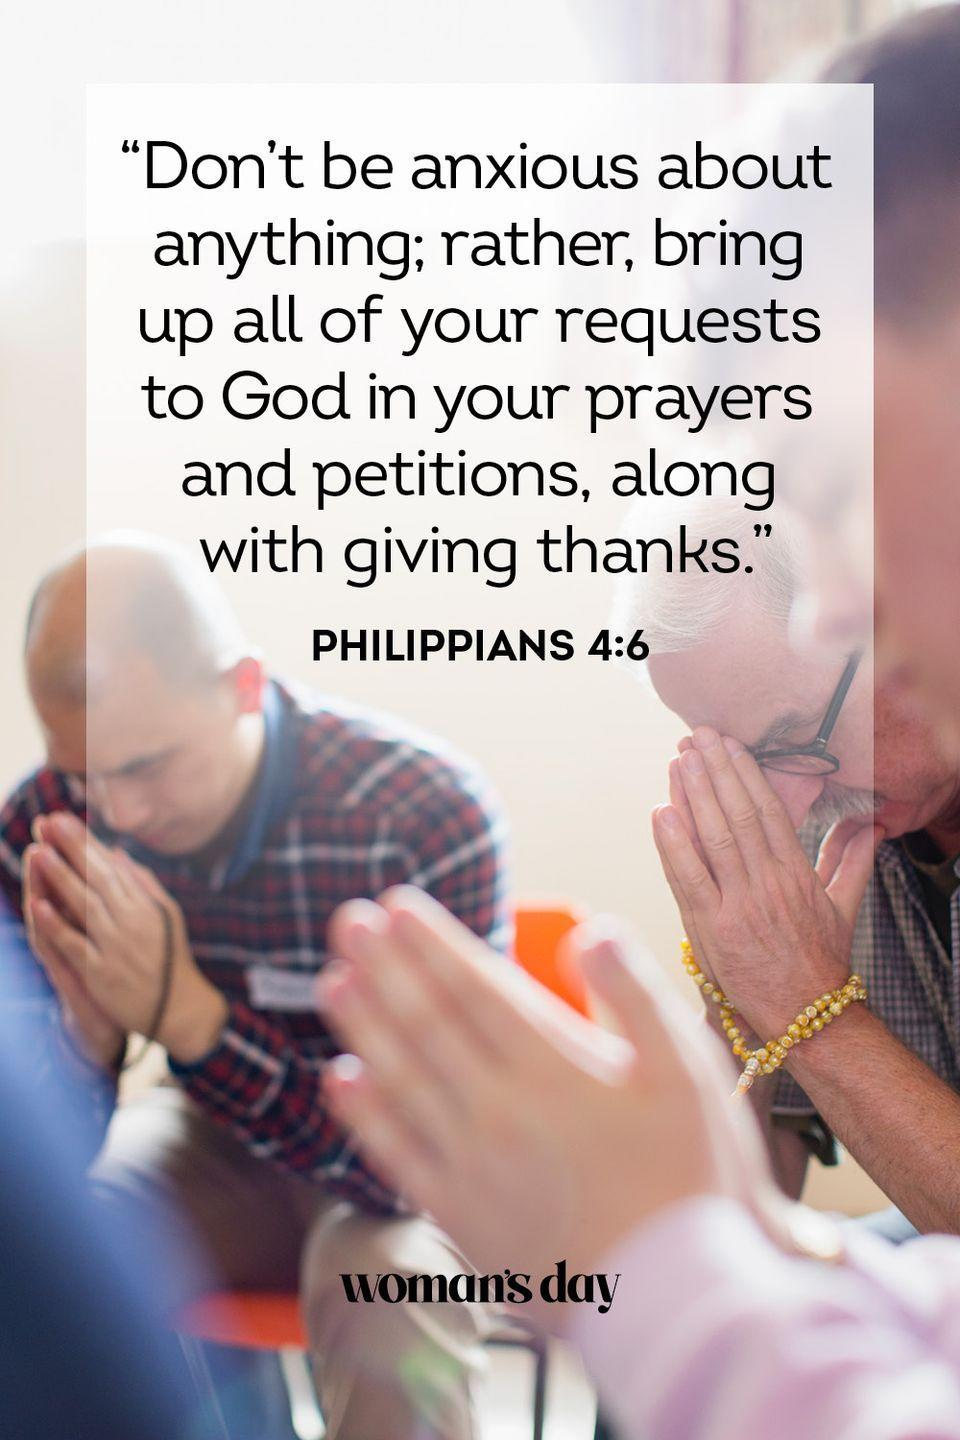 """<p>""""Don't be anxious about anything; rather, bring up all of your requests to God in your prayers and petitions, along with giving thanks."""" </p><p><strong>The Good News:</strong> If you feel anxious, you must let God know about your troubles. He will guide you.</p>"""